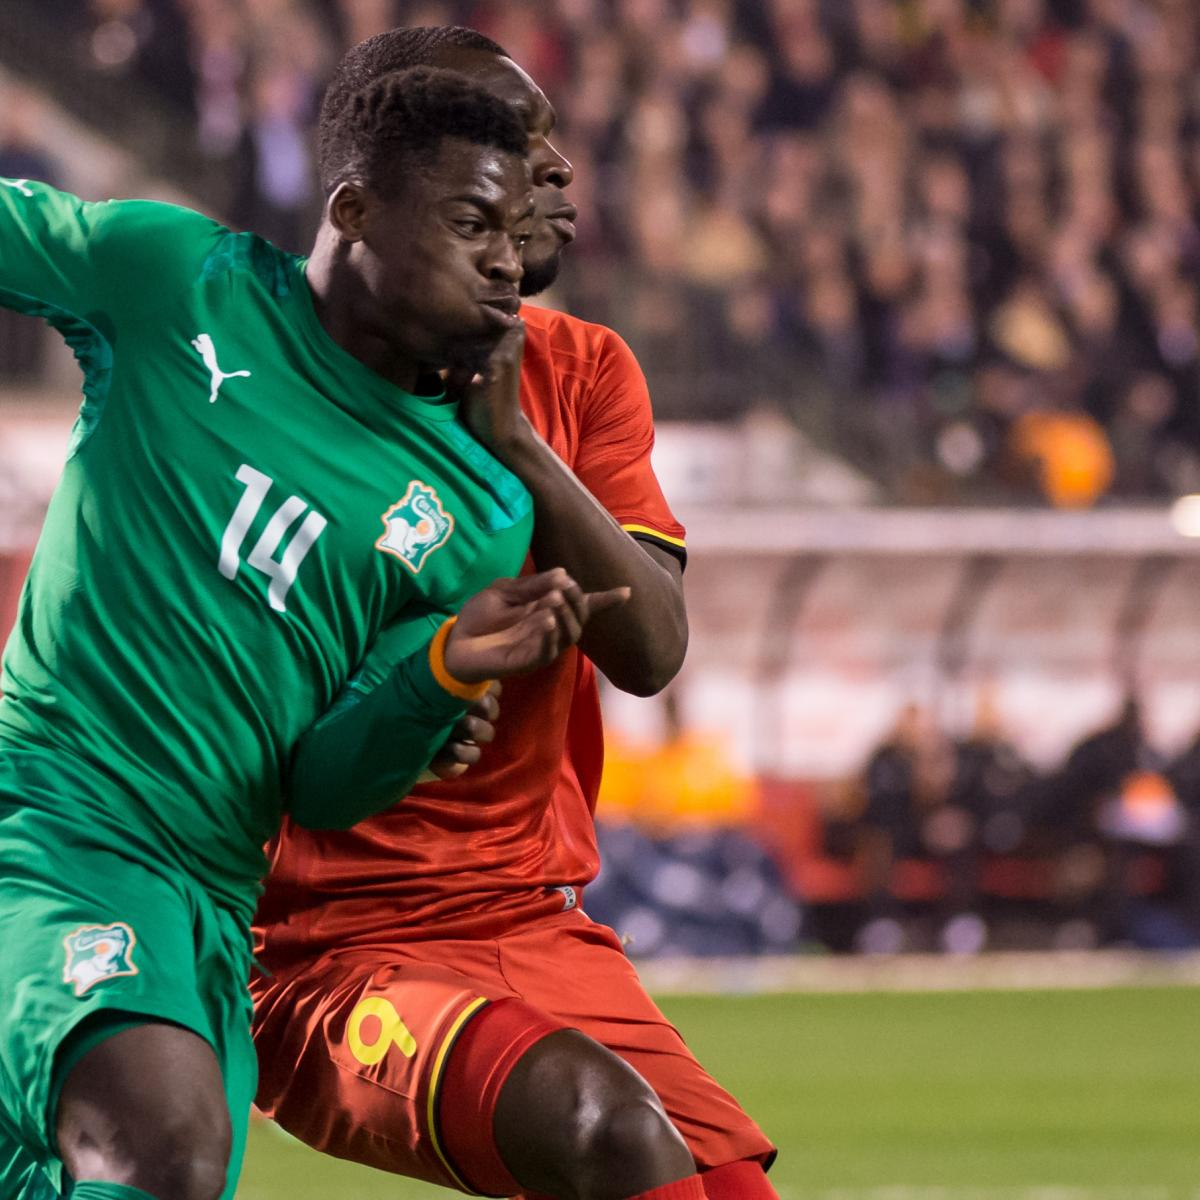 Serge Aurier Photos Et Images De Collection: Arsenal Transfer News: Serge Aurier Will Make Gunners